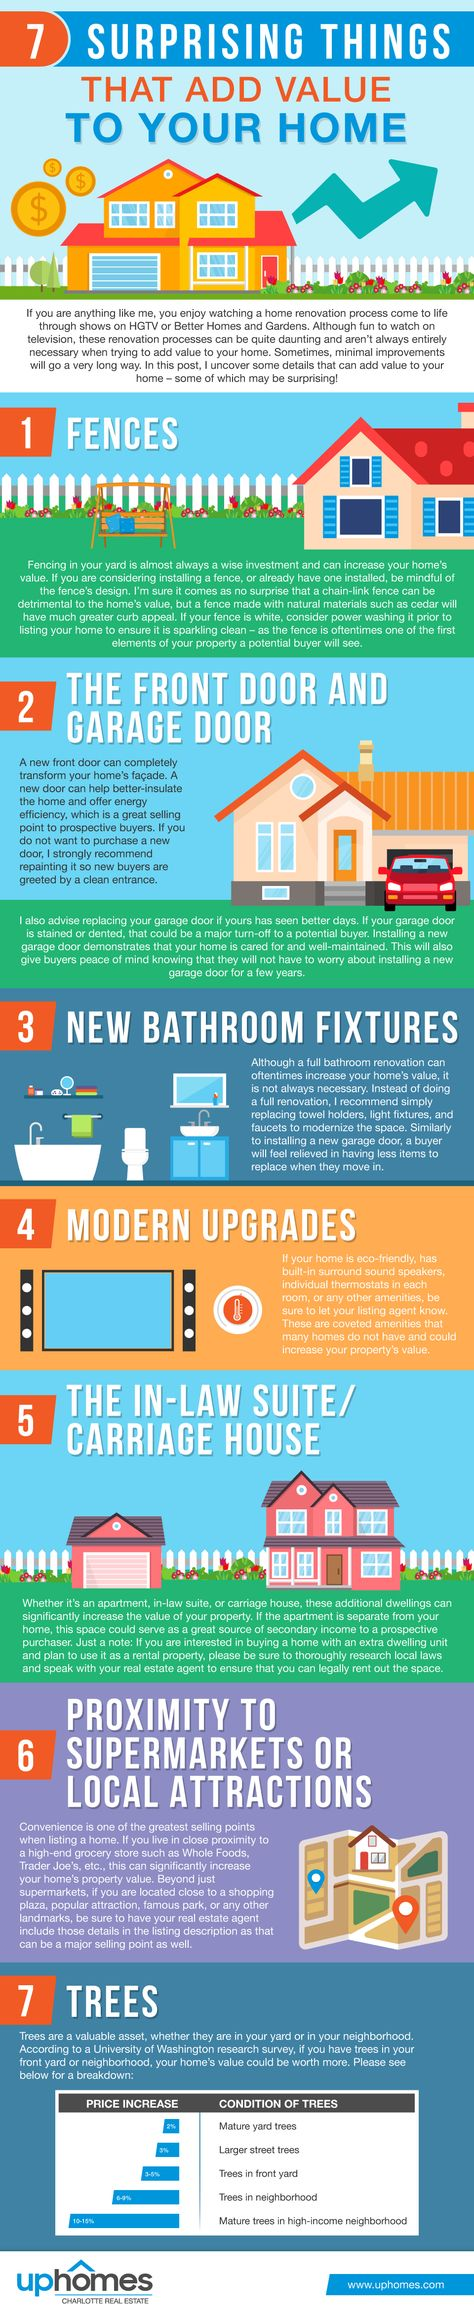 7 Surprising Things That Add Value to Your Home